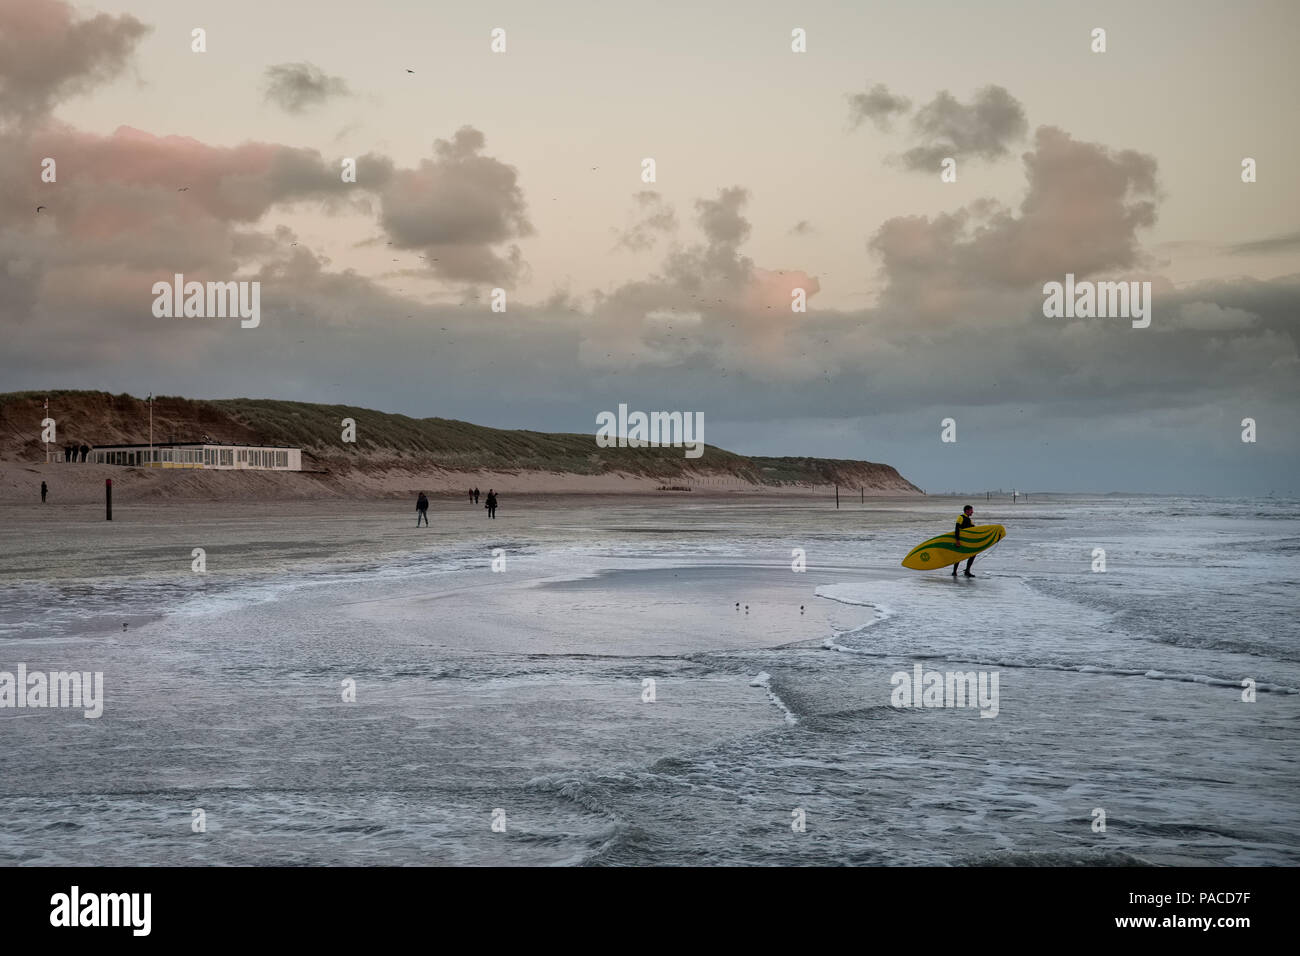 A surfer on a beach in Texel during sunset Stock Photo